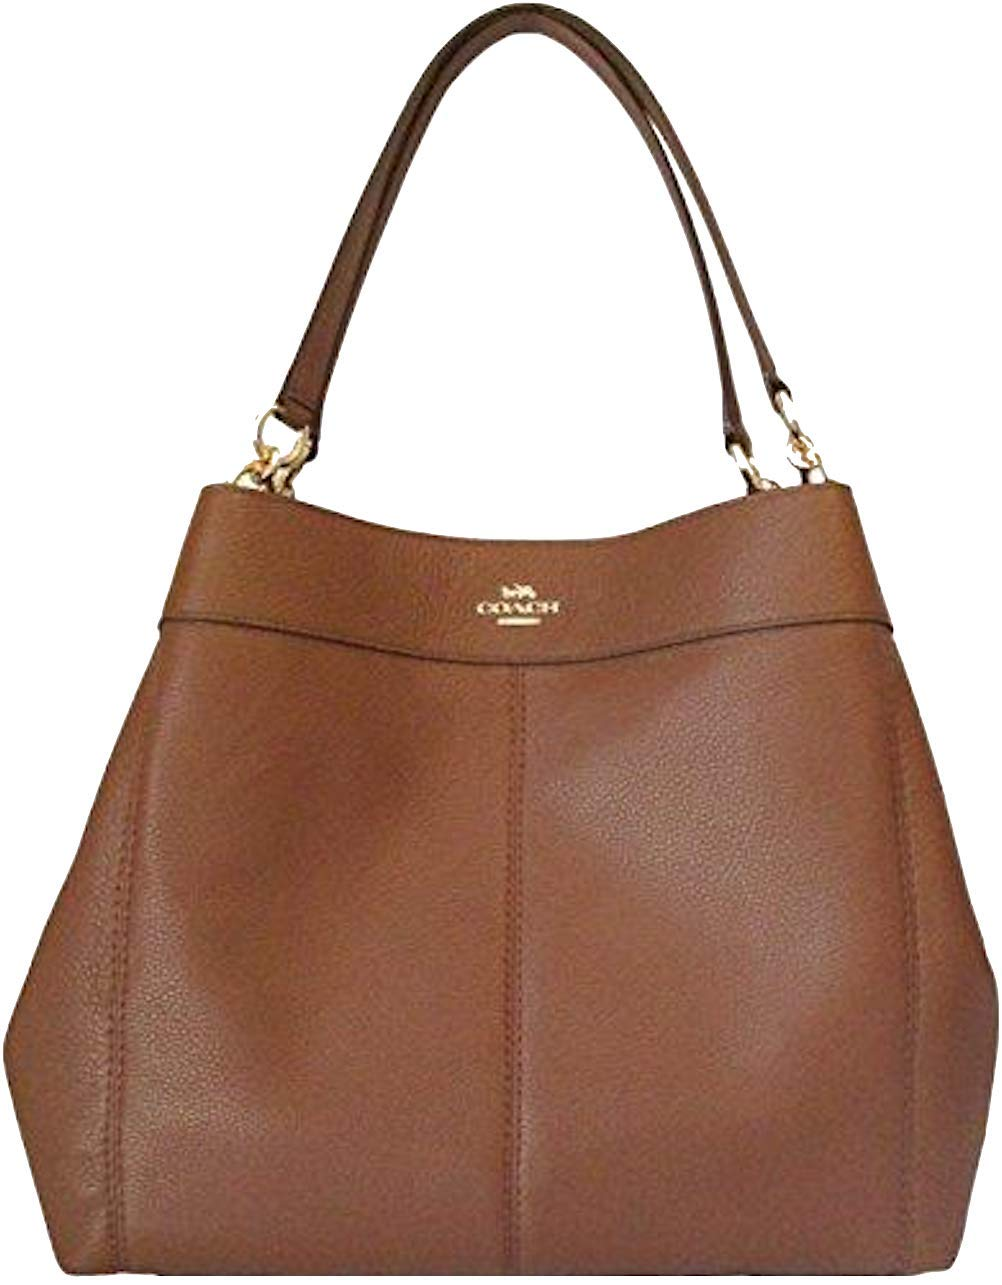 Coach Lexy Pebble Leather Shoulder Bag (Saddle 2)